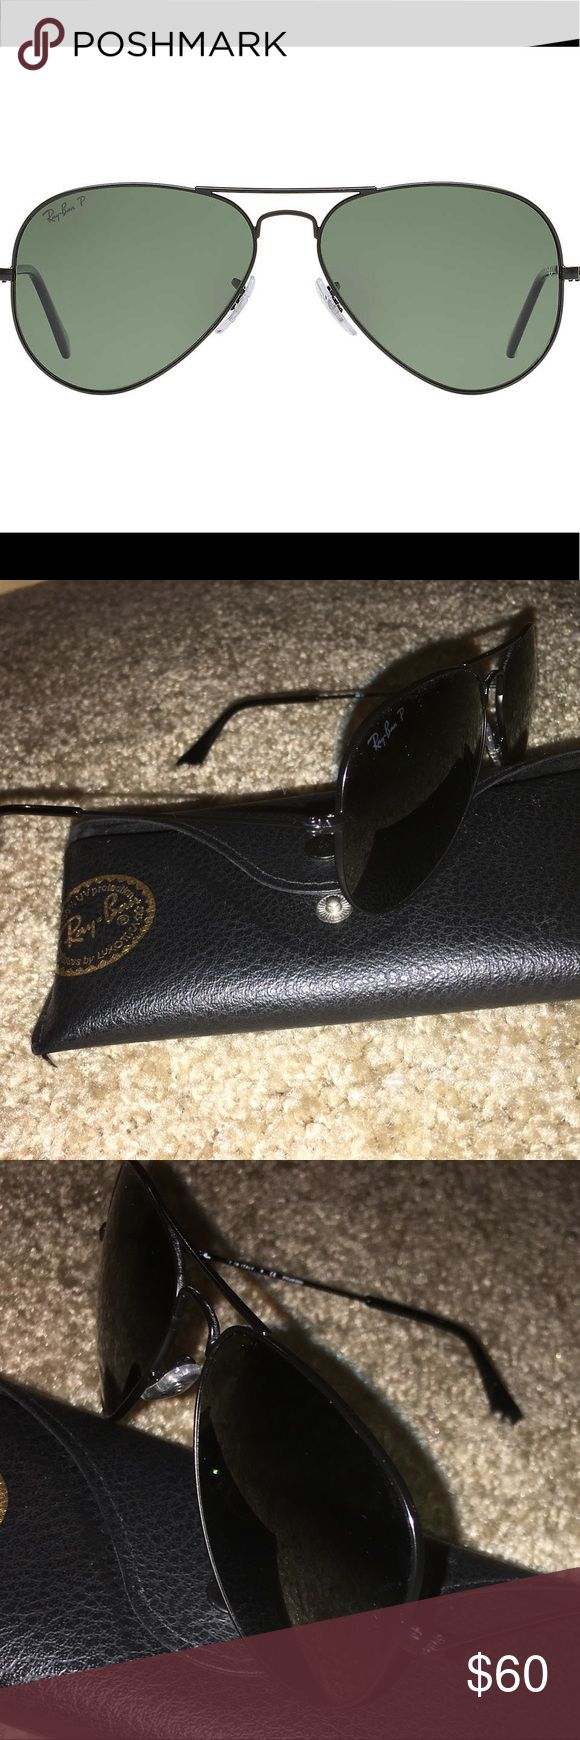 Ray-Bans Classic Aviators- Polarized Like new/excellent condition. Color and logo are both matte black. *SUNGLASSES ARE POLARIZED* Classic Ray-Bans size- 62 mm. Sunglass case will be provided with purchase. Will also clean the lenses prior to shipping. Offers welcomed 😊 Ray-Ban Accessories Sunglasses